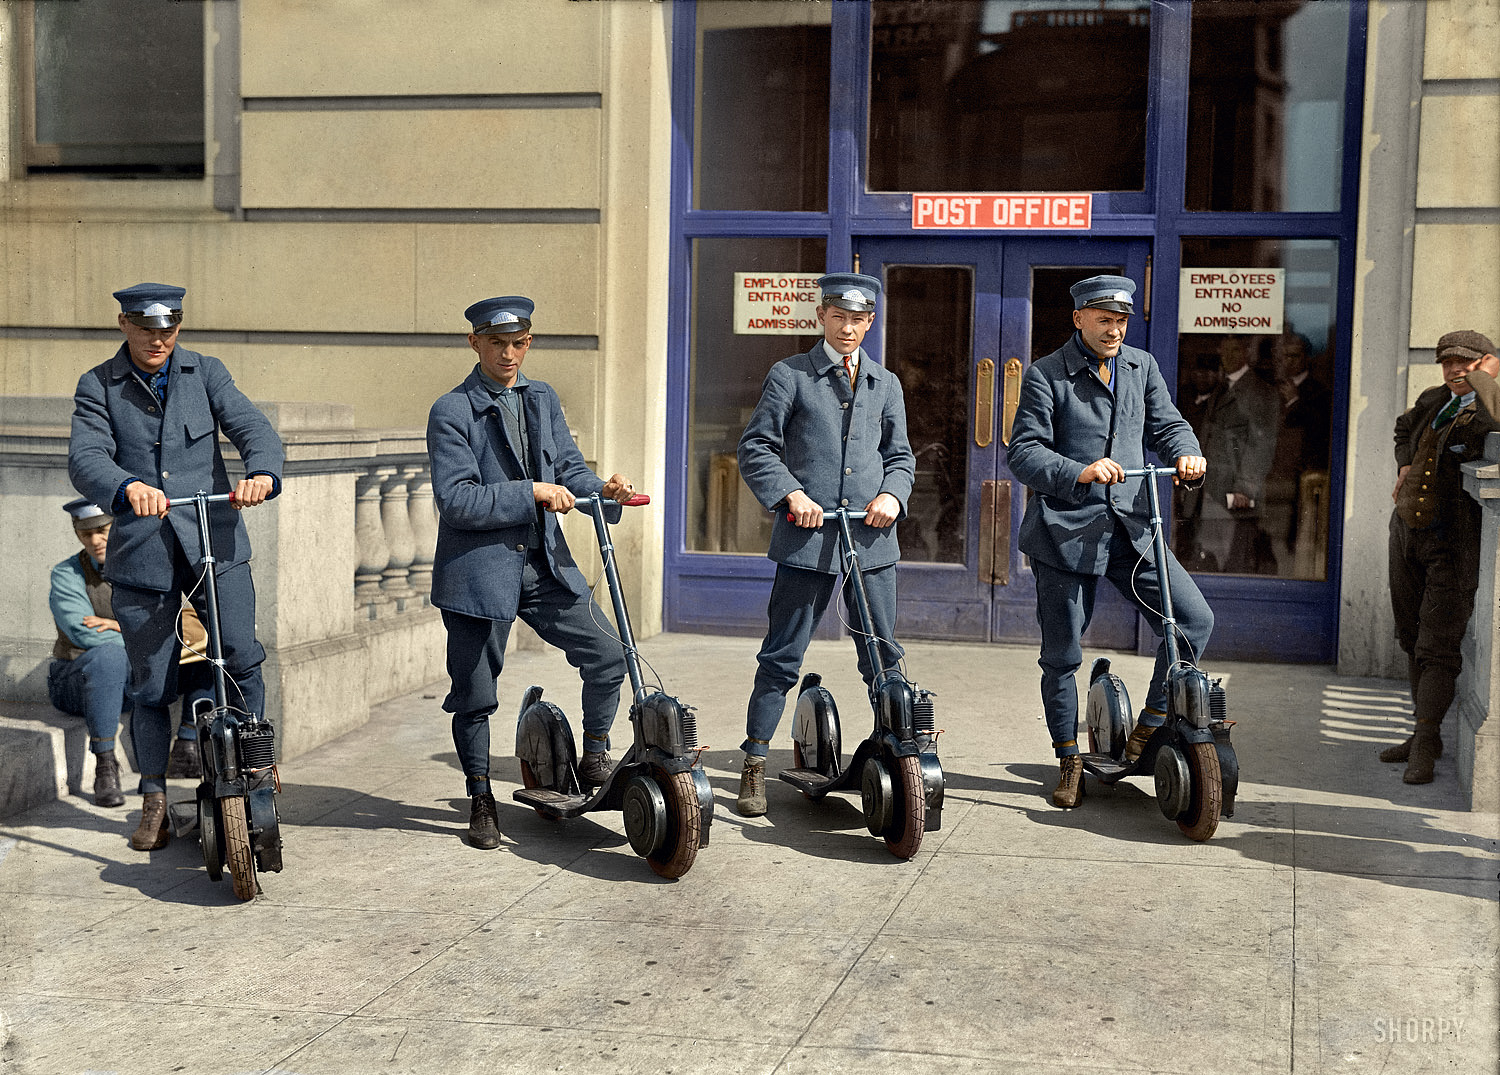 Post Officers Model their new Aiutopeds Scooters 1917